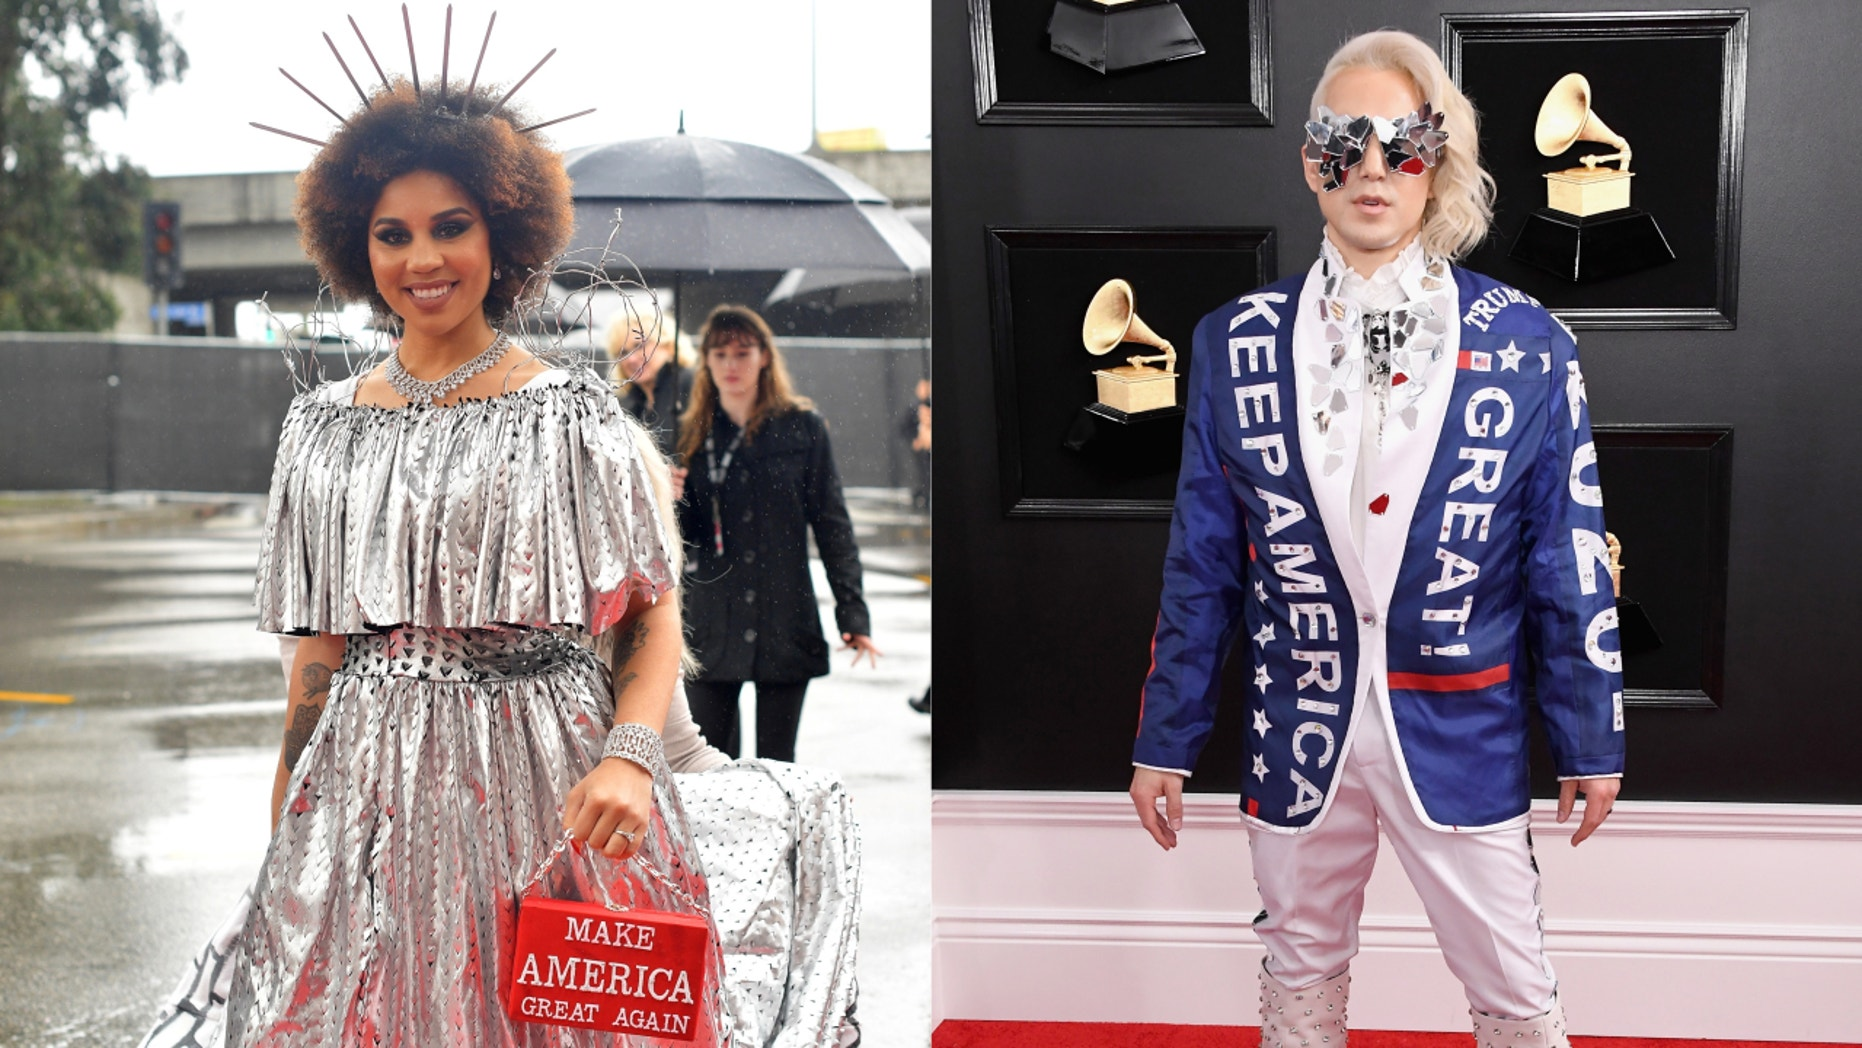 Pro-Trump singer flaunts 'Build the Wall' dress at Grammys